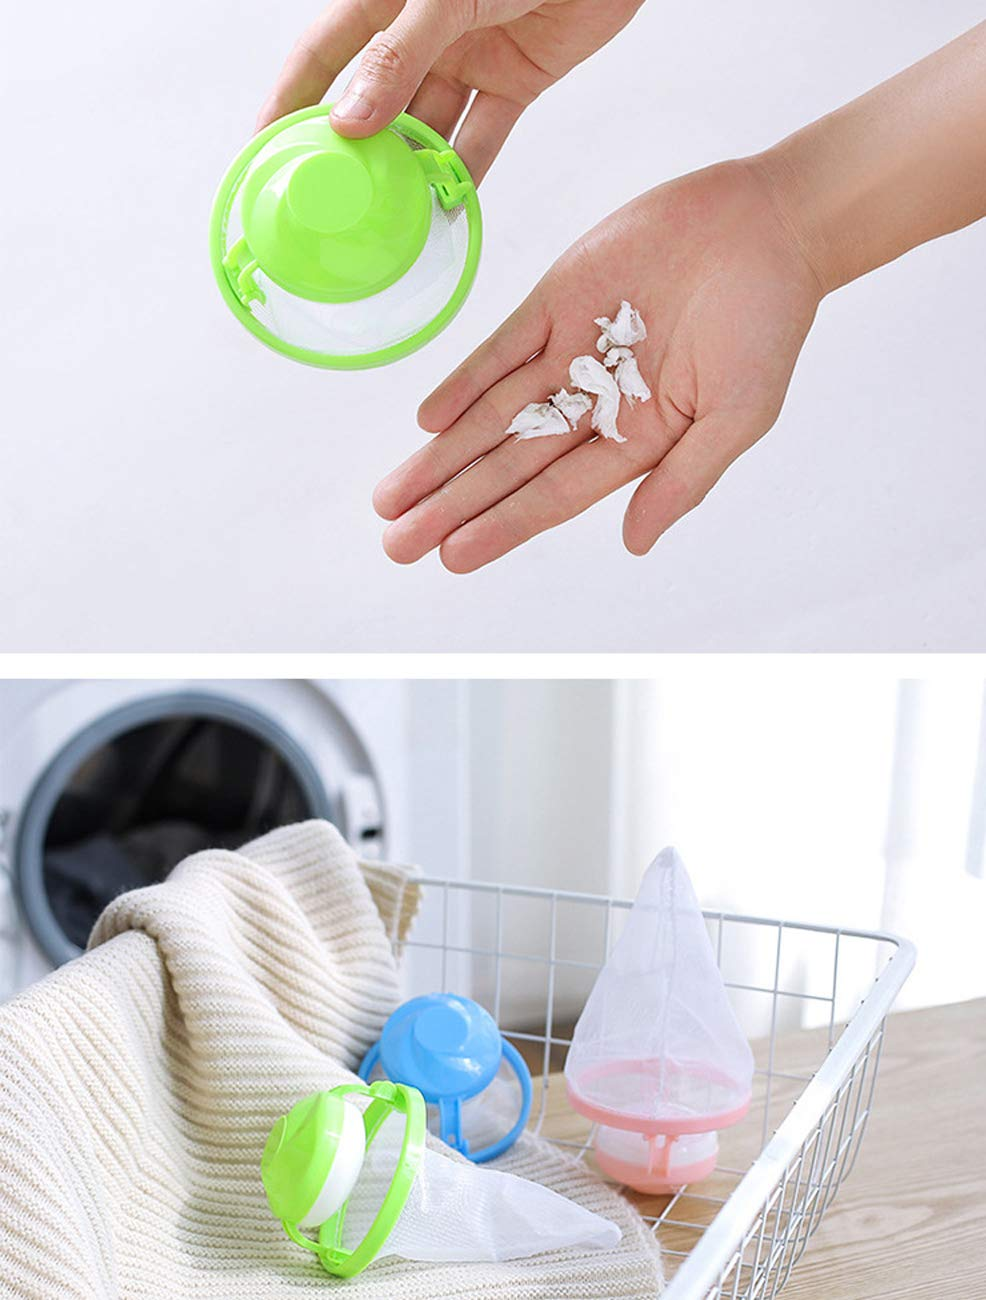 6PC Reusable Hair Remover Tool for Washing Machine Floating Pet Fur Catcher Laundry Ball Washing Machine Universal Float Filter Bag Laundry Ball Floating Pet Fur Catcher Filtering Hair Removal Device Wool Cleaning Supplies